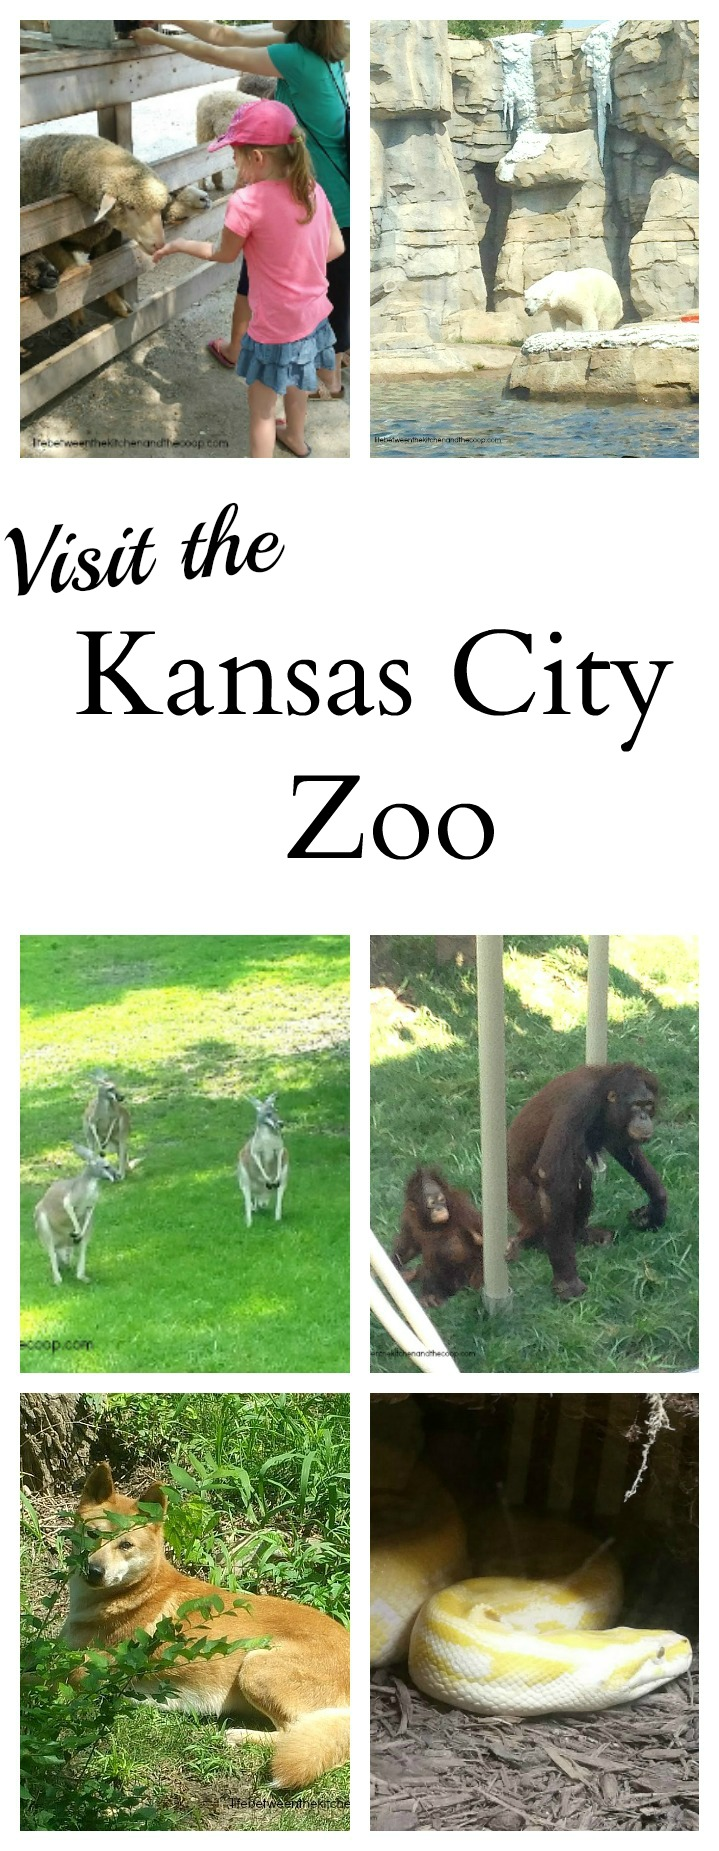 Visit kansas city zoo Garden city zoo